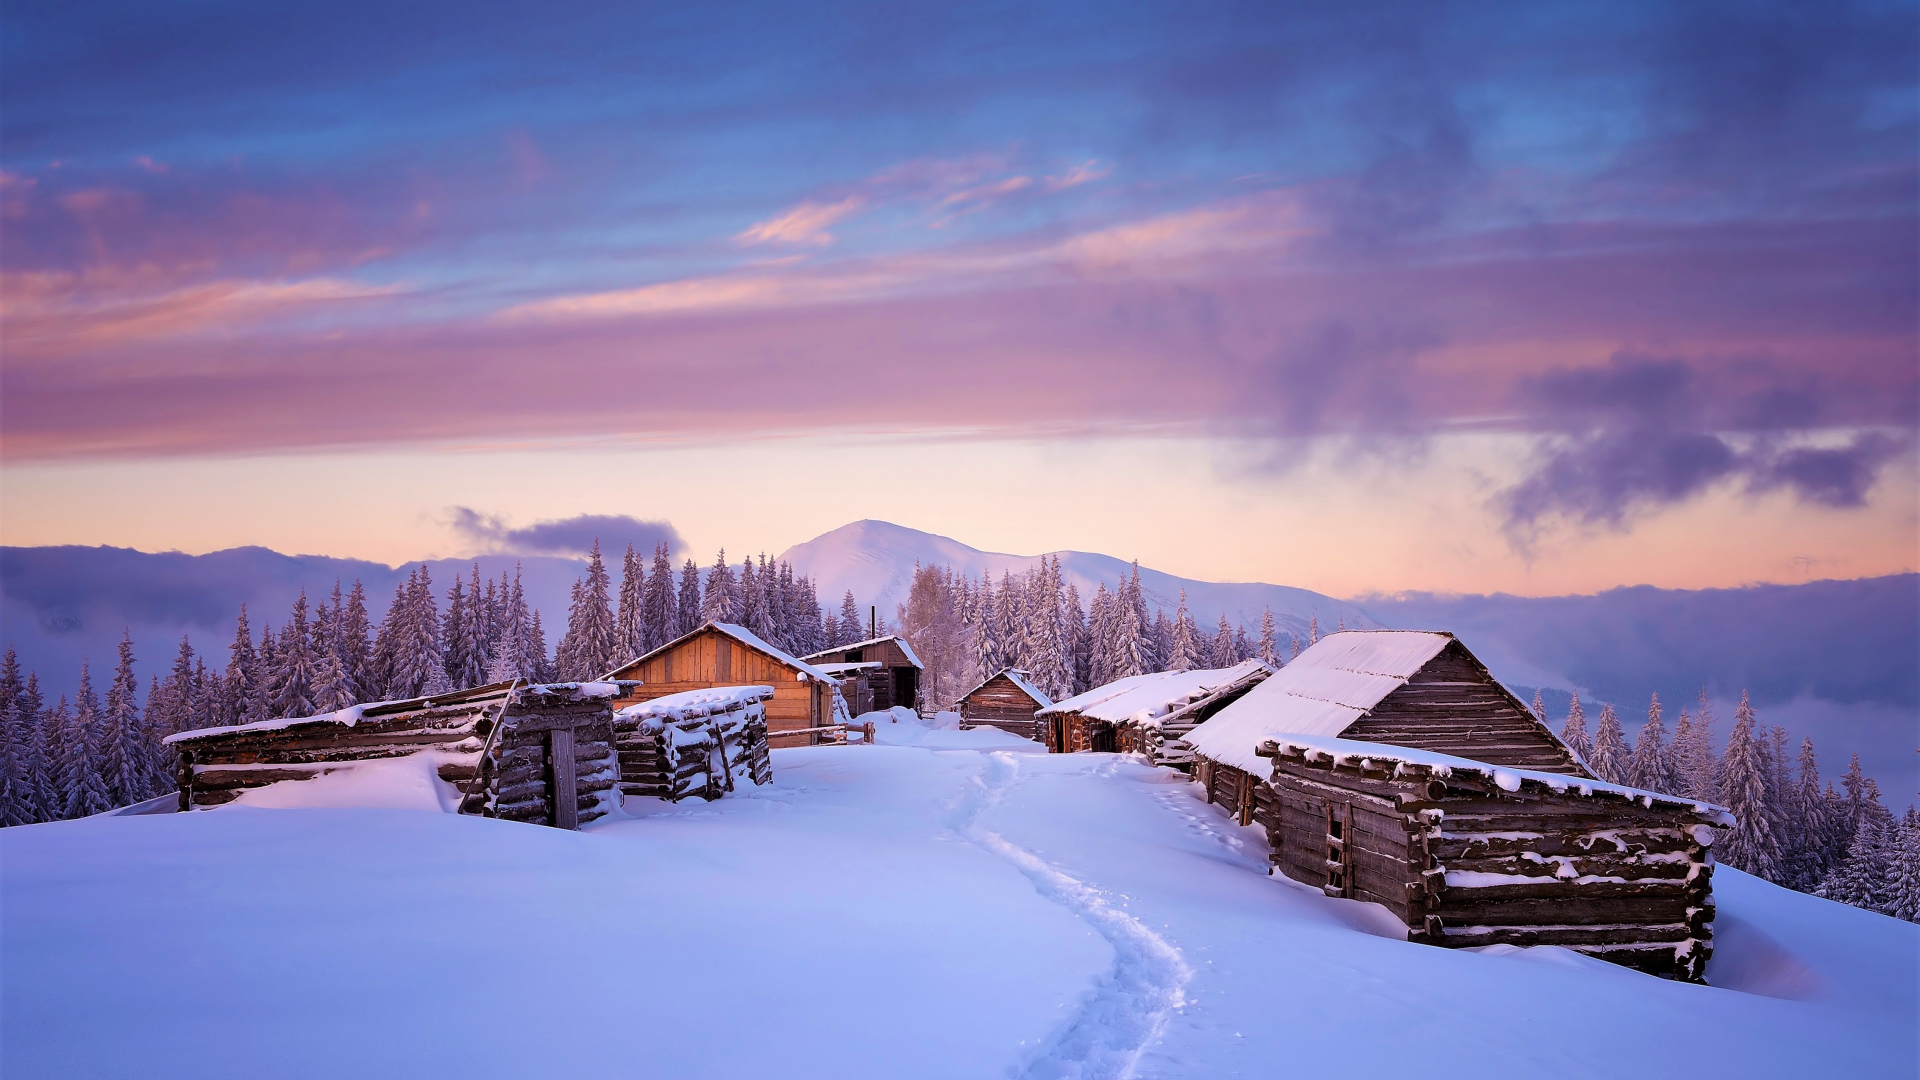 Download 1920x1080 wallpaper houses winter landscape sunset full hd hdtv fhd 1080p - 1366x768 is 720p or 1080p ...